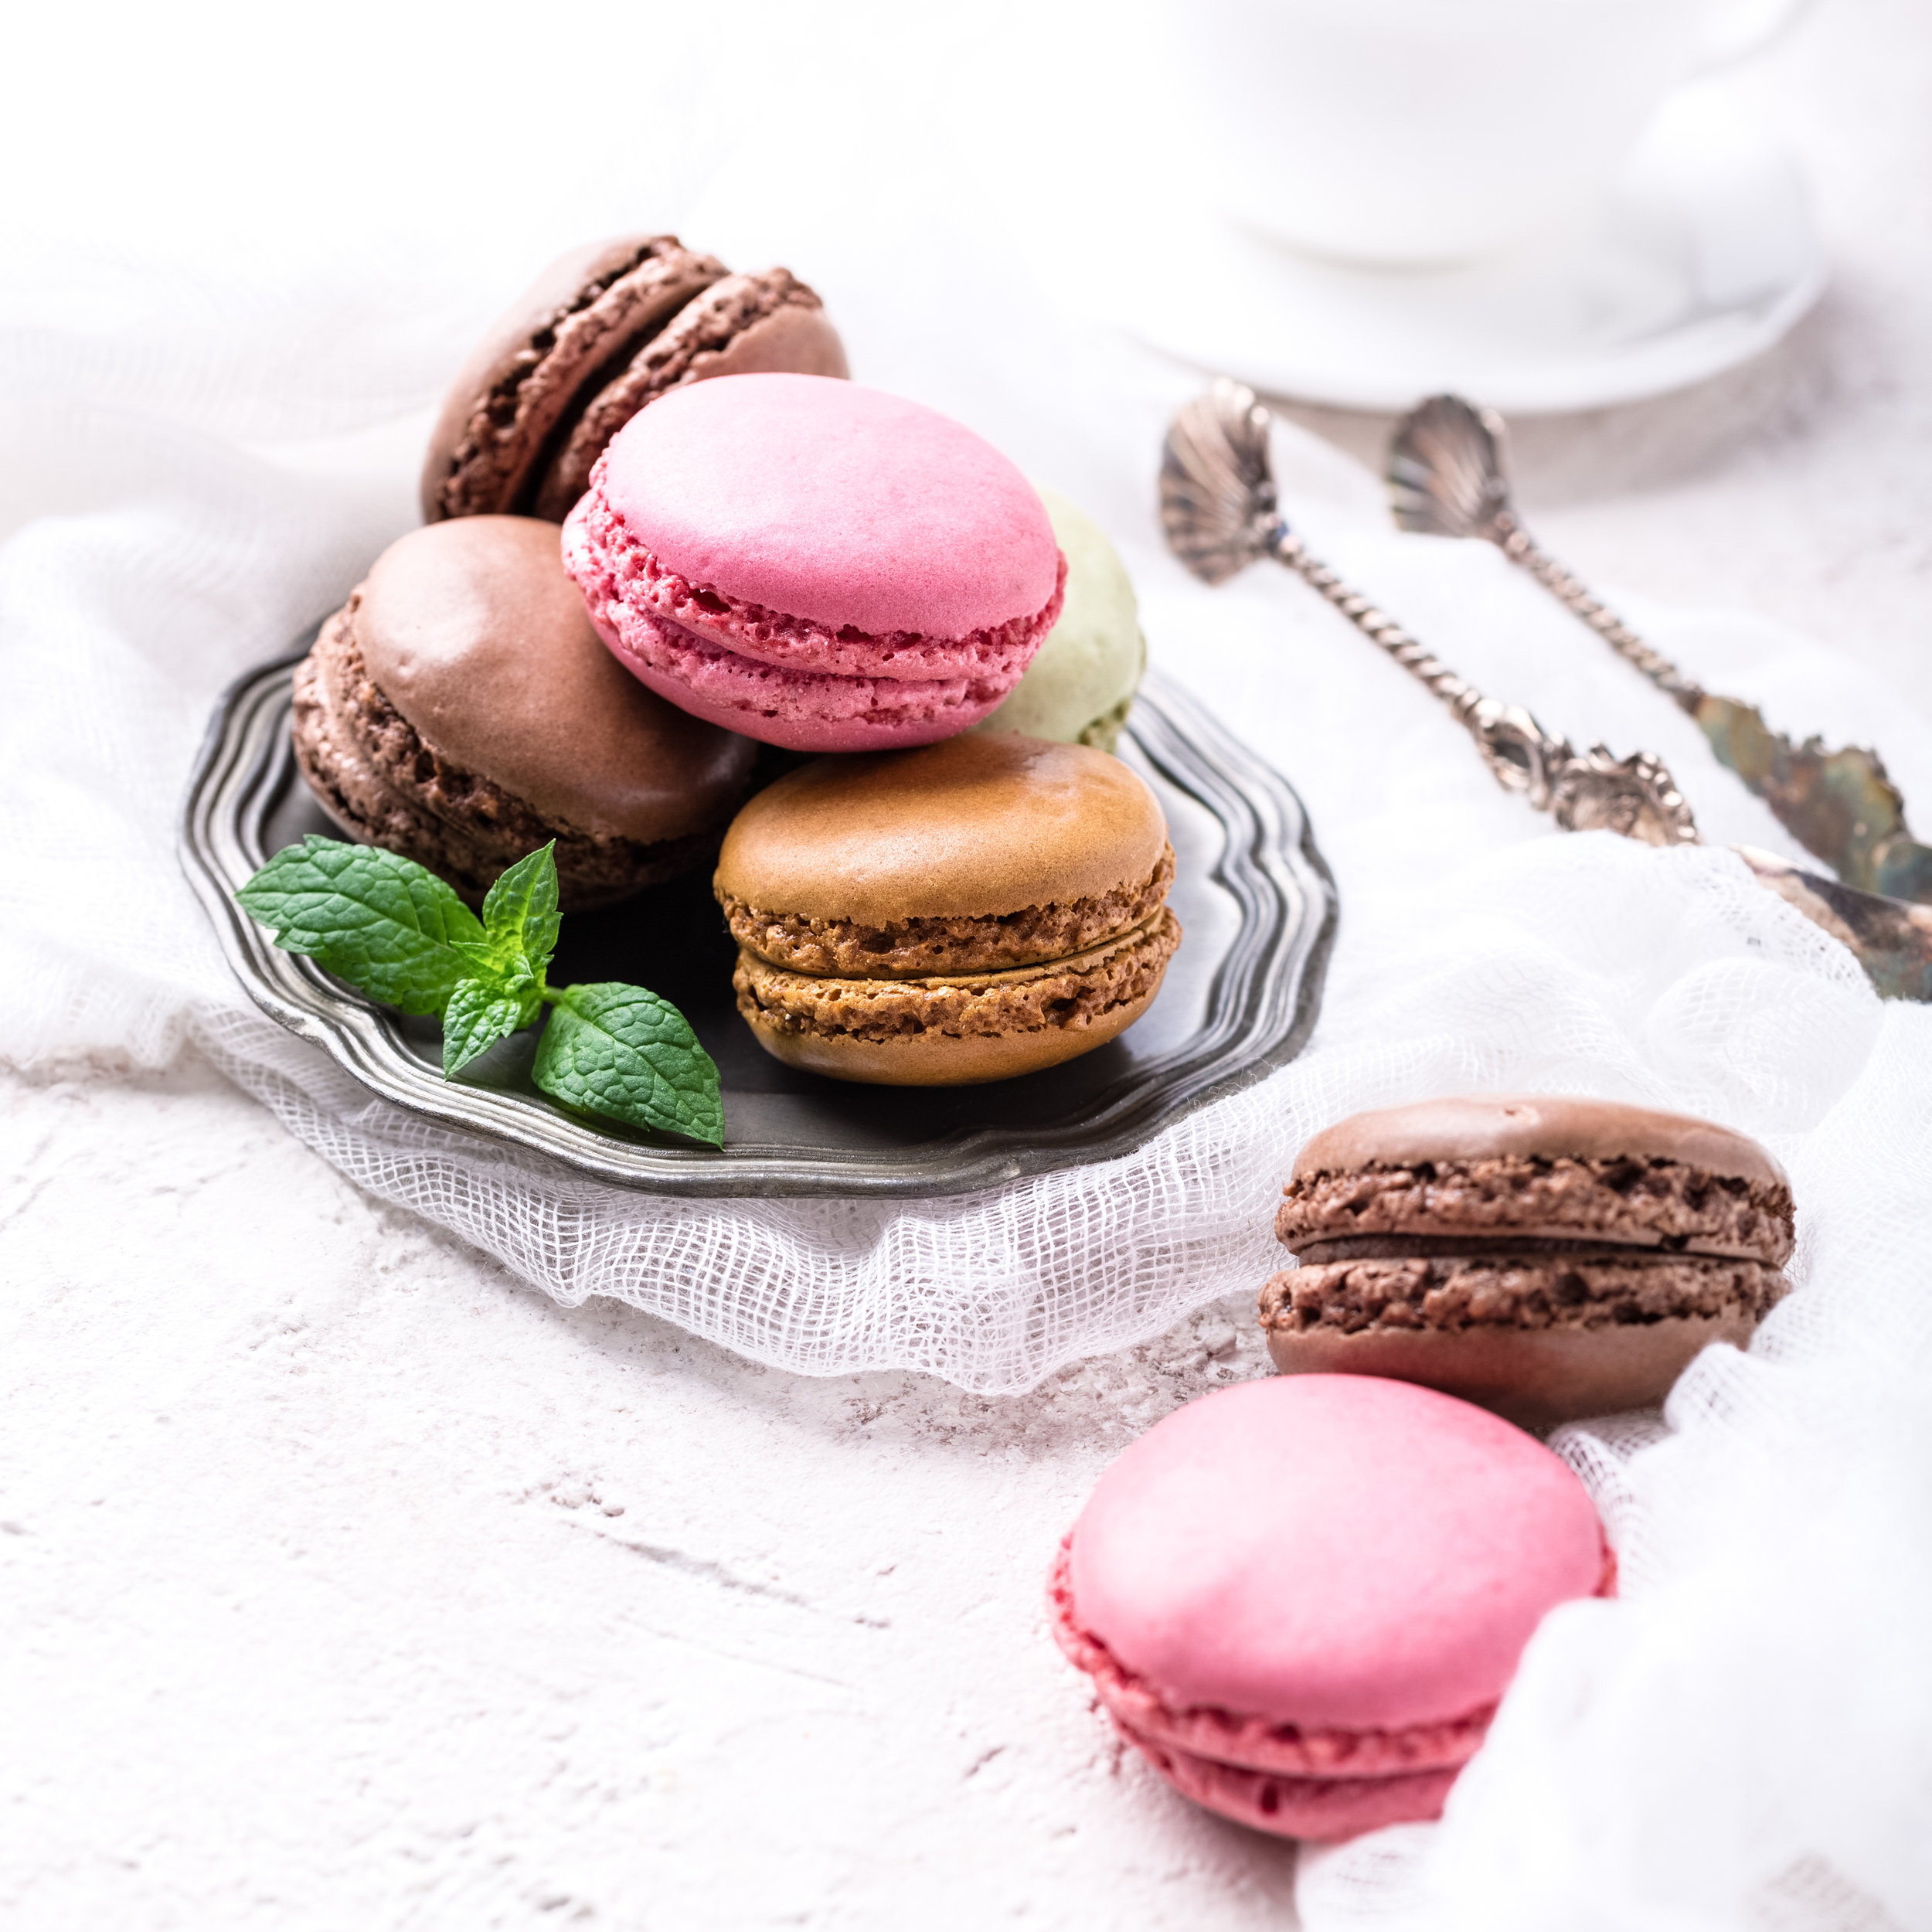 Colorful almond cookies macaron or macaroon on light background, vintage card, holiday food concept, copy space for text.